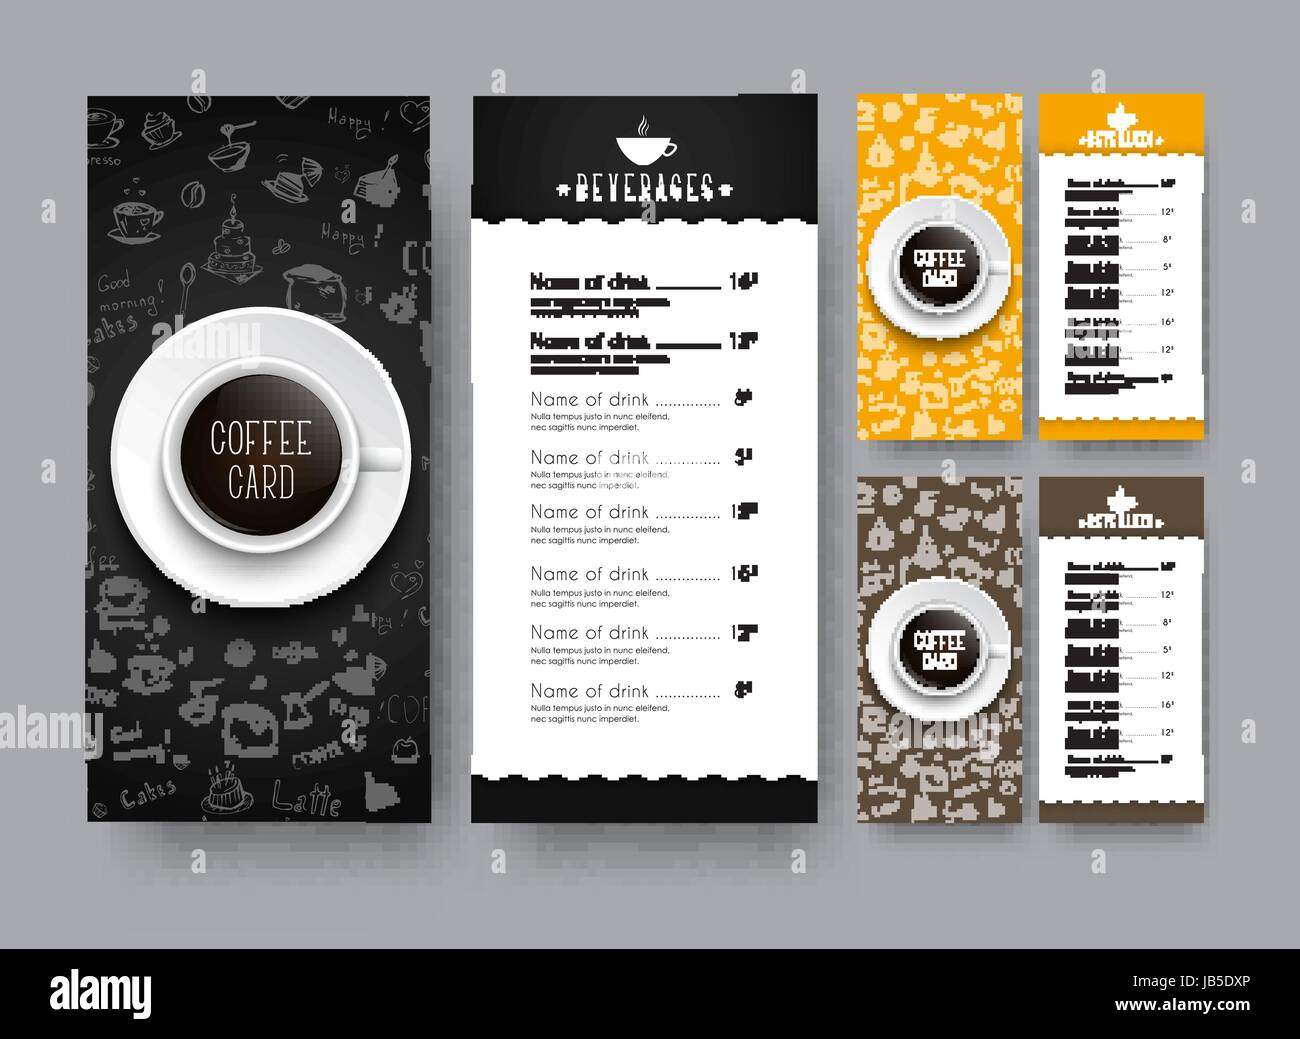 Design of a narrow menu for cafe or restaurant